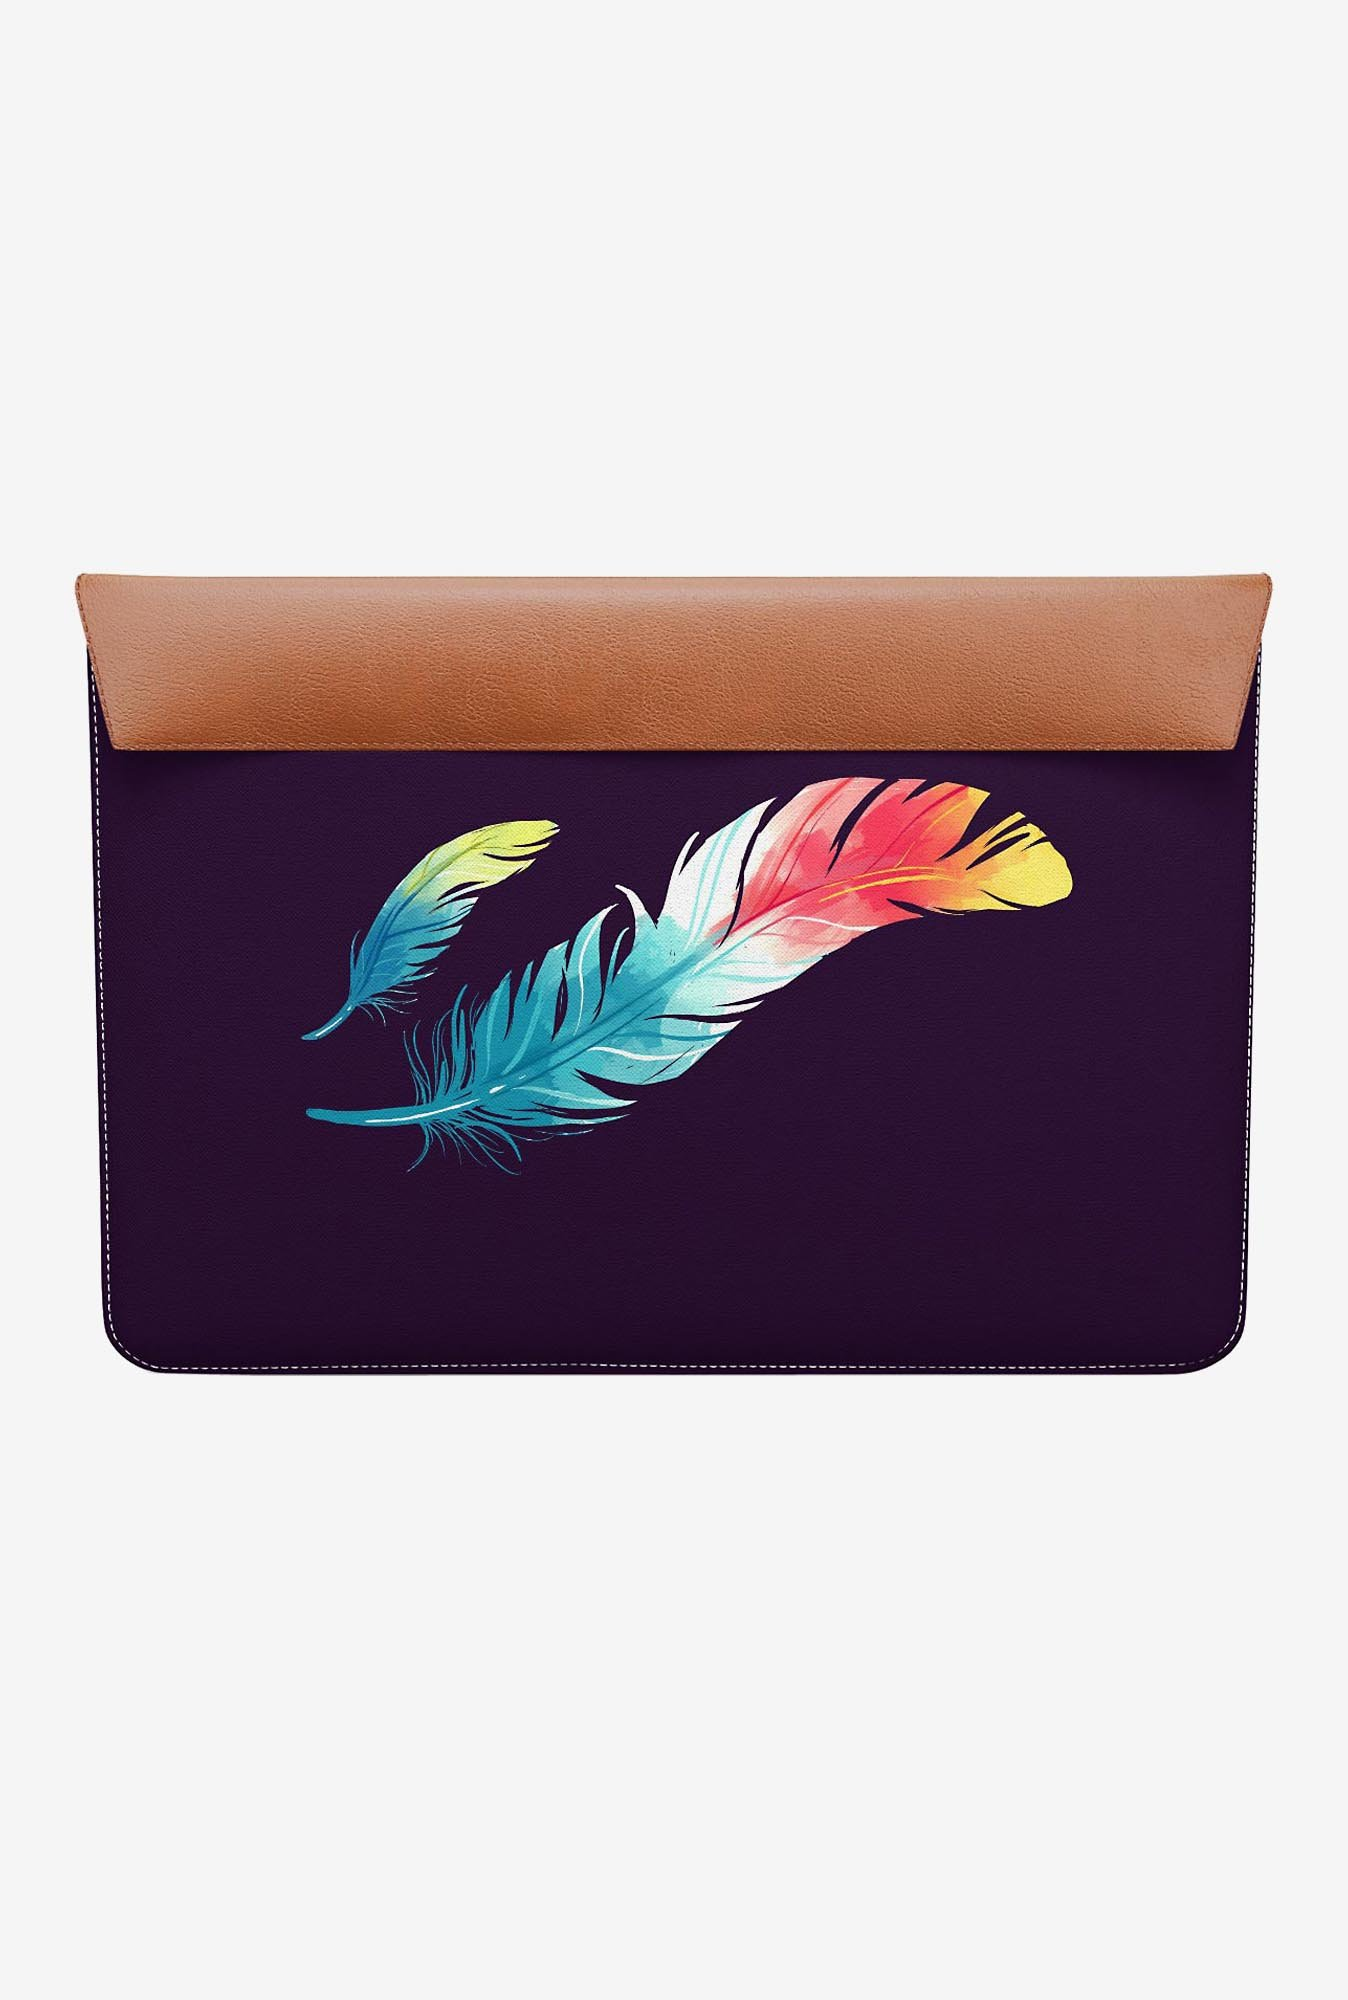 DailyObjects Feather Colors MacBook Pro 13 Envelope Sleeve